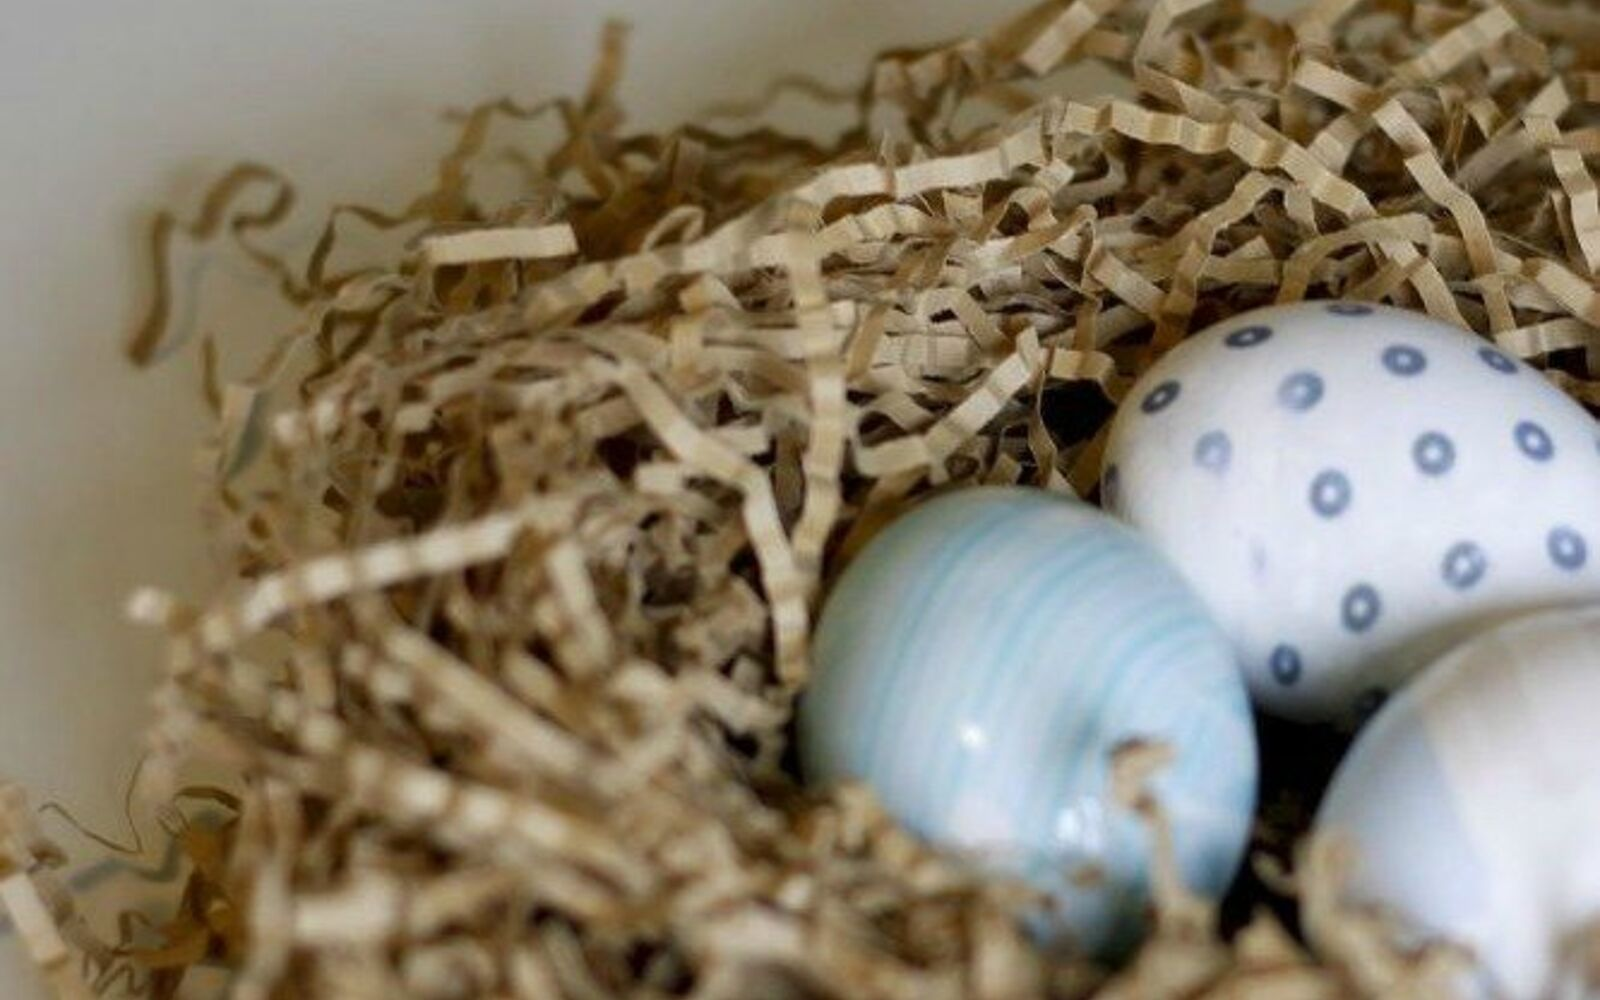 s 25 quick easter egg ideas that are just too stinkin cute, crafts, easter decorations, Dye real eggs using old silk ties